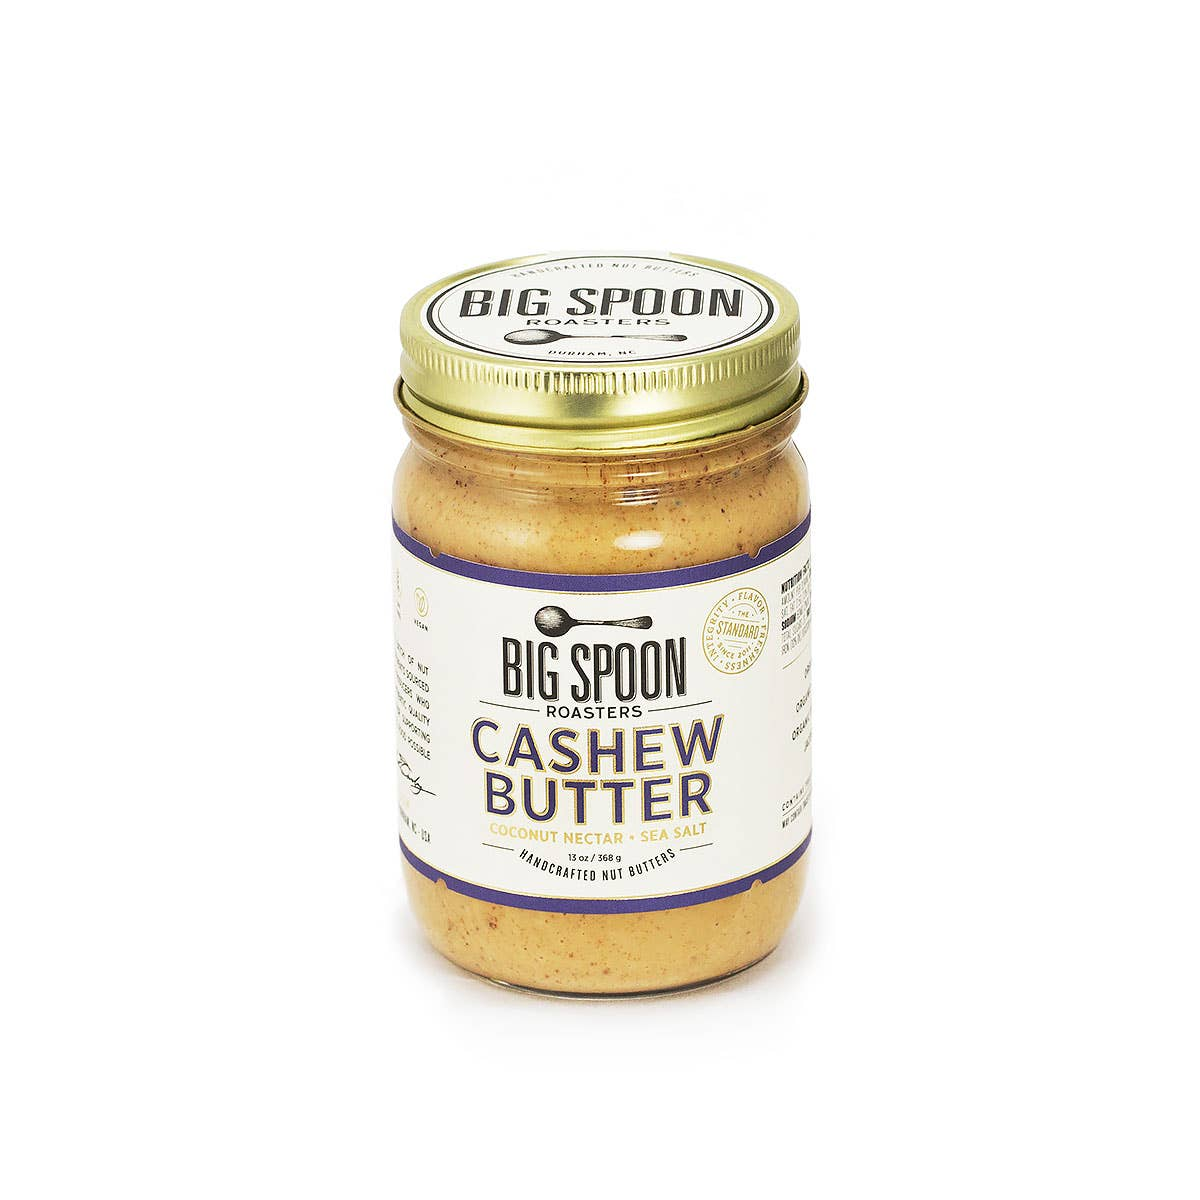 Cashew Butter with Coconut Nectar & Sea Salt